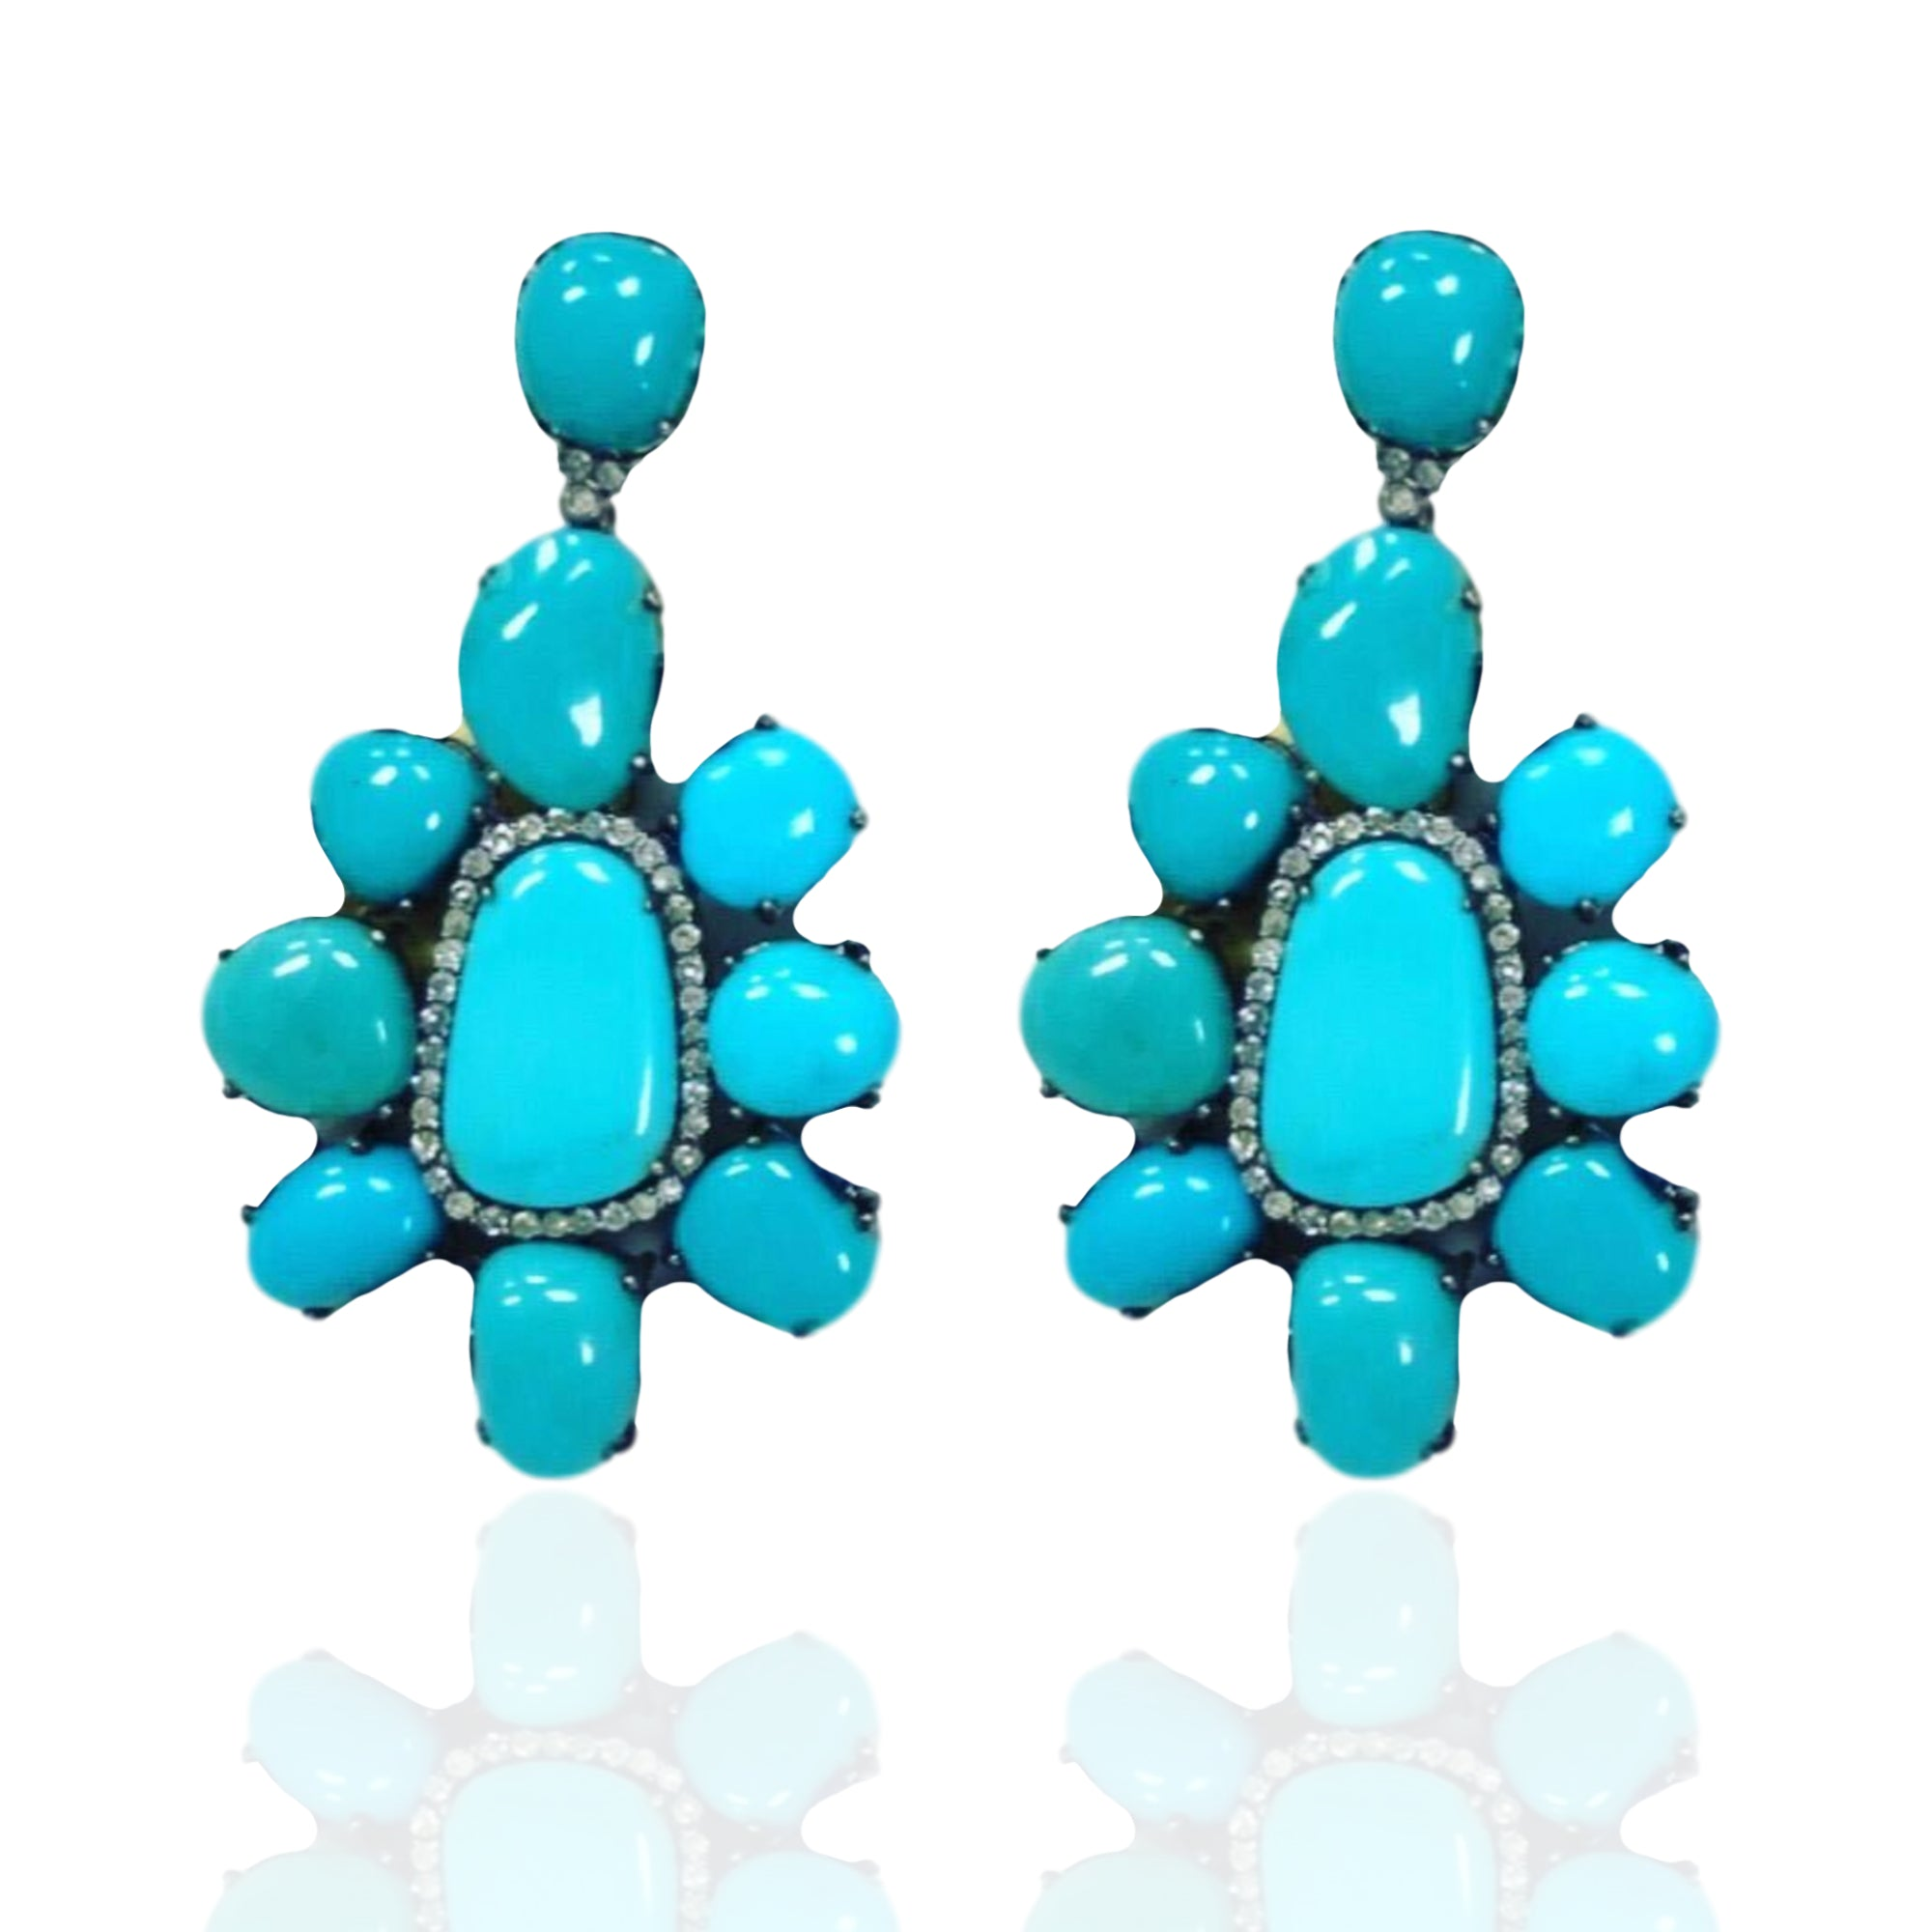 Turquoise Cluster Earrings with Blue Sapphires and White Diamonds